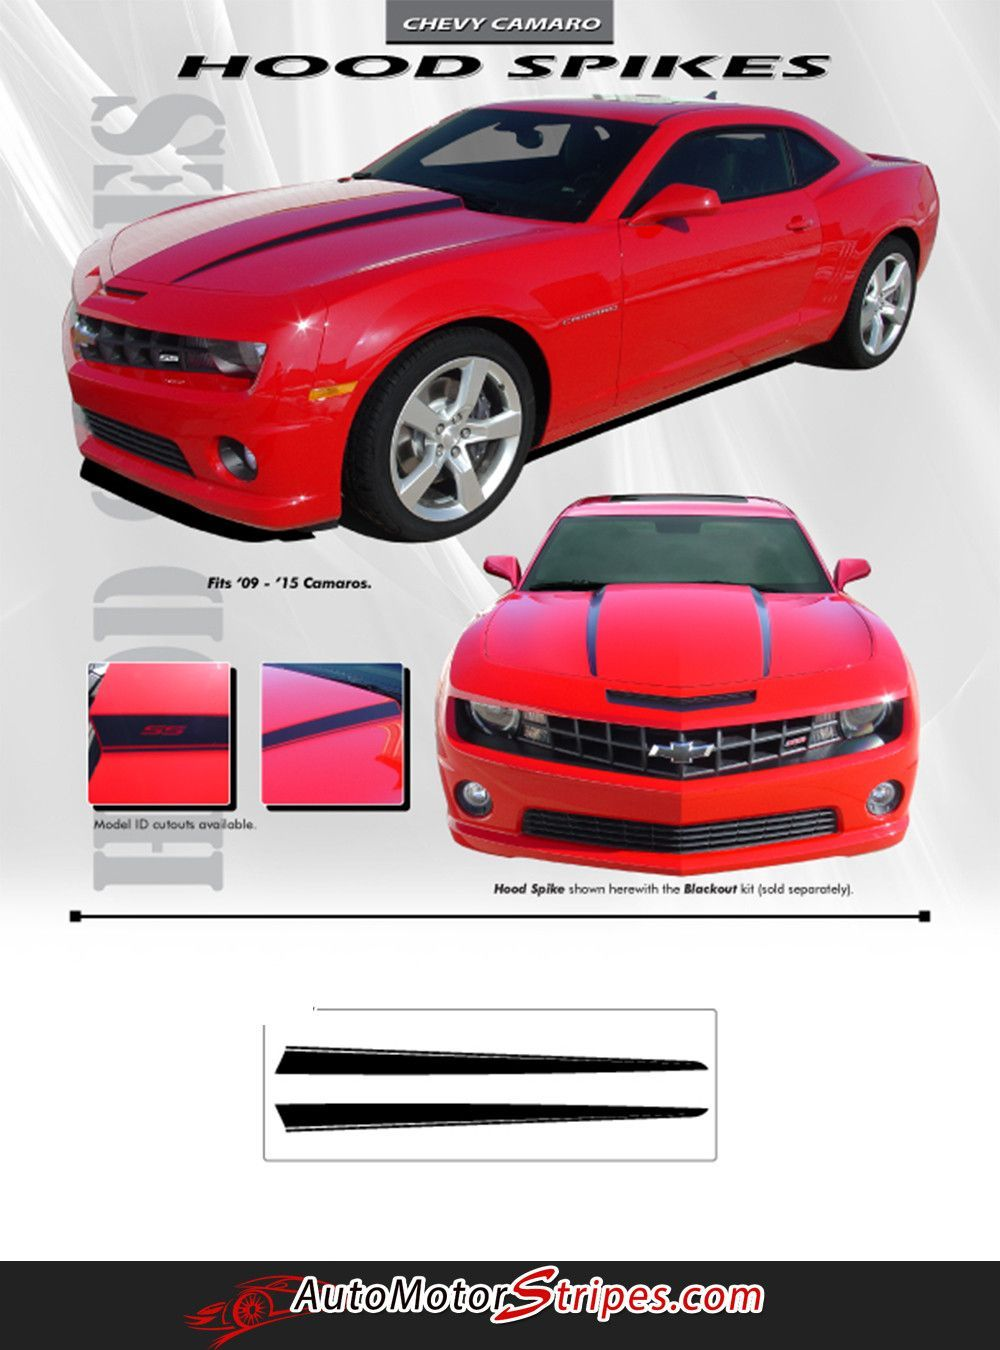 2010 2013 and 2014 2015 chevy camaro hood spears vinyl decal 2010 2013 and 2014 2015 chevy camaro hood spears vinyl decal graphics for ss rs lt ls models publicscrutiny Gallery